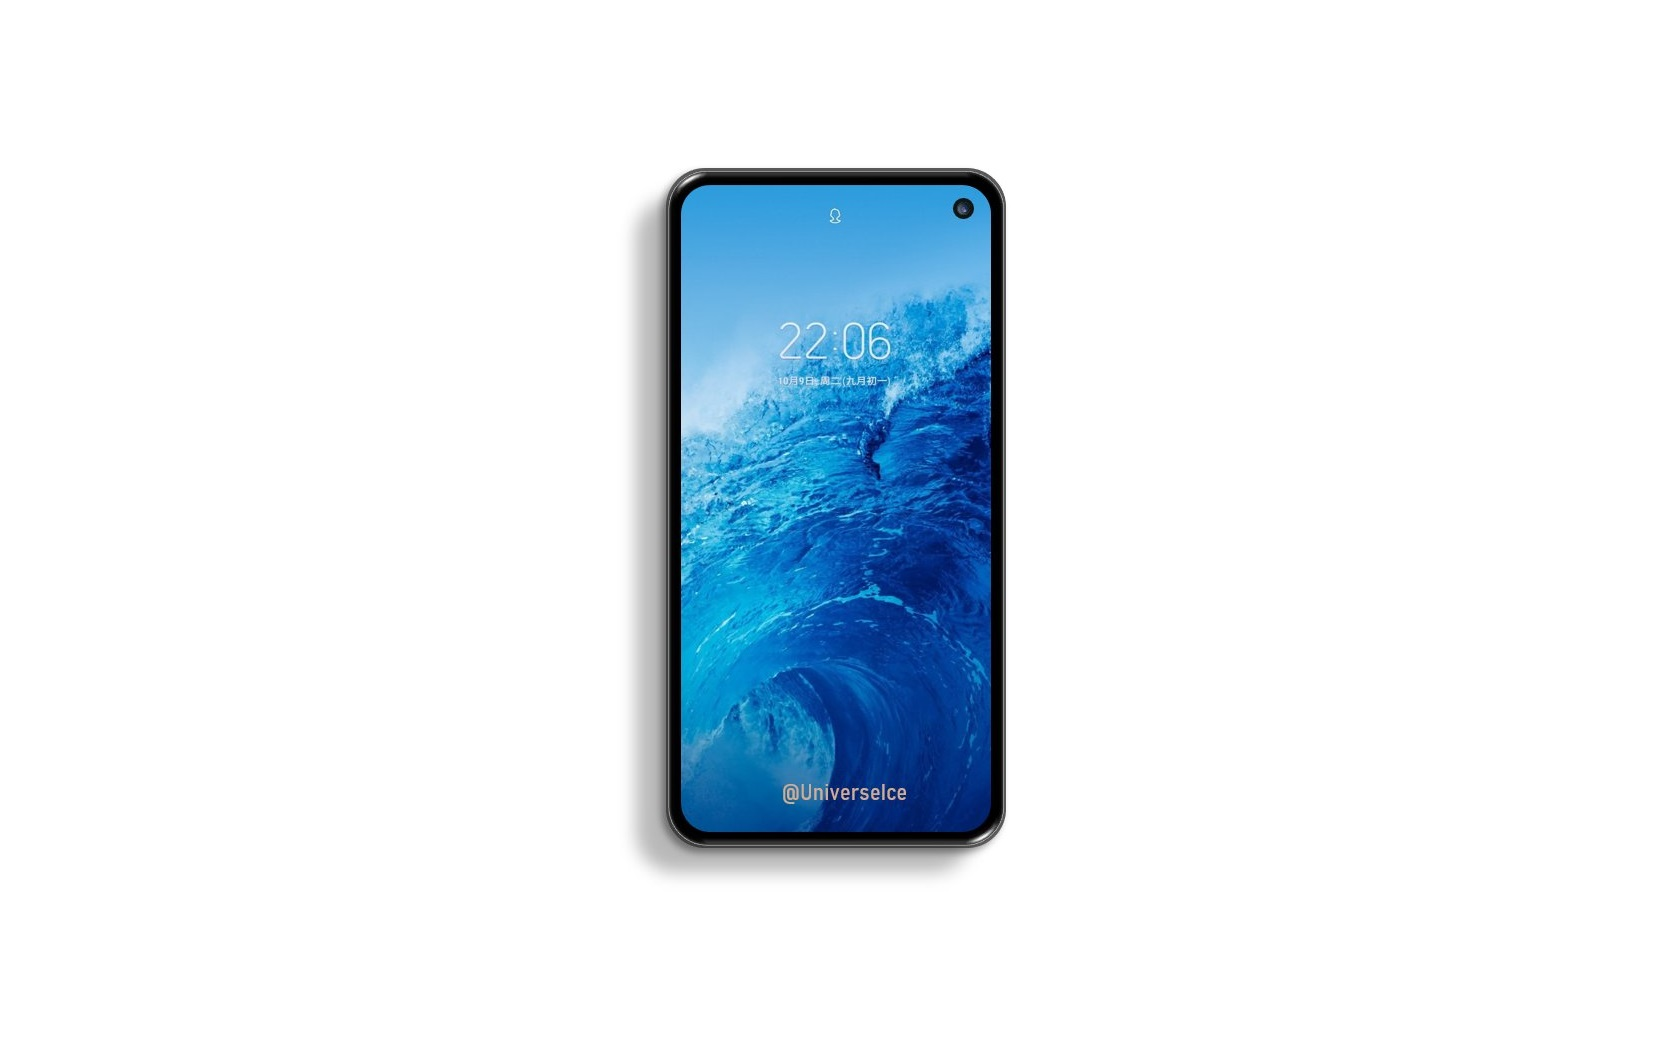 Application of mobile phone jammer | The Galaxy S10's key feature will reportedly be ultrasonic